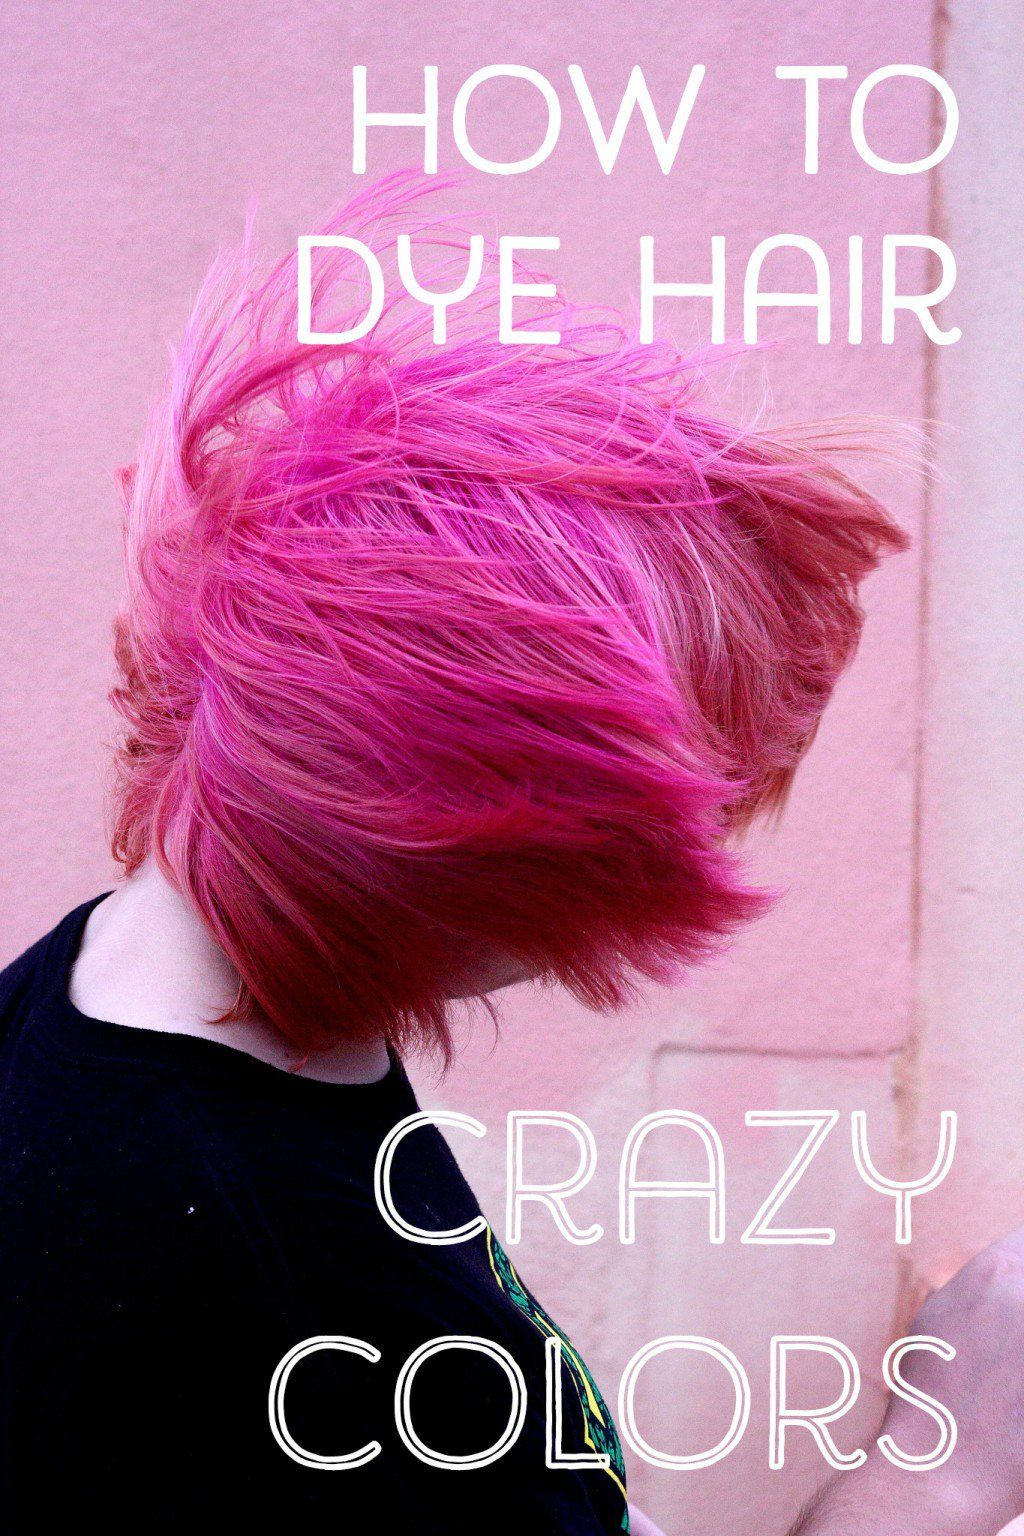 How To Dye Hair Crazy Colors Bright Pink Hair Colored Hair Tips